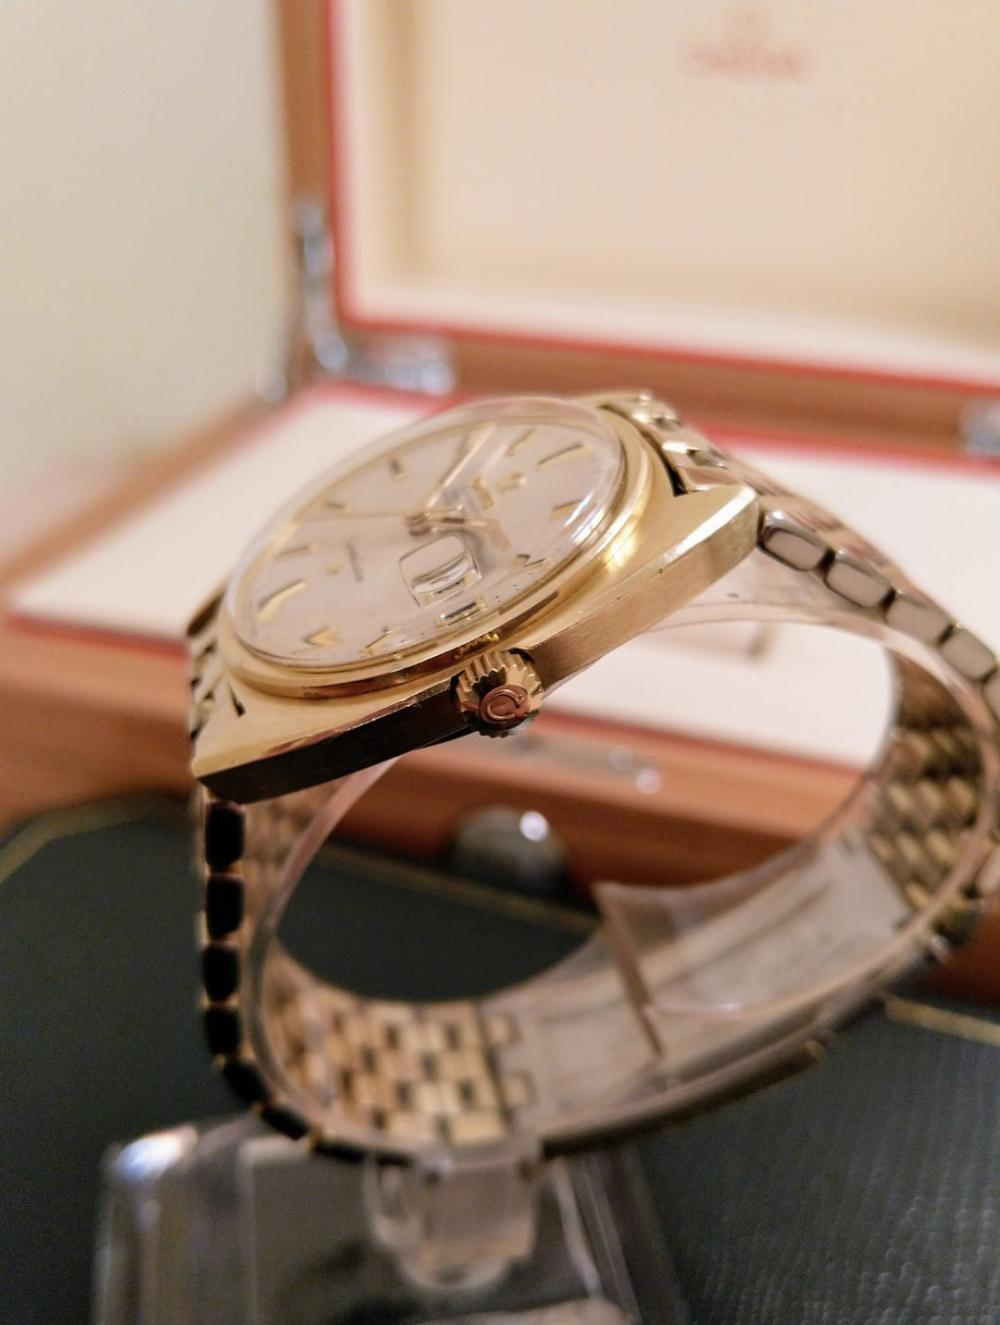 A 1968 Omega Constellation Chronometer, Cal.564, Gold Filled, Signed Crystal, A/F